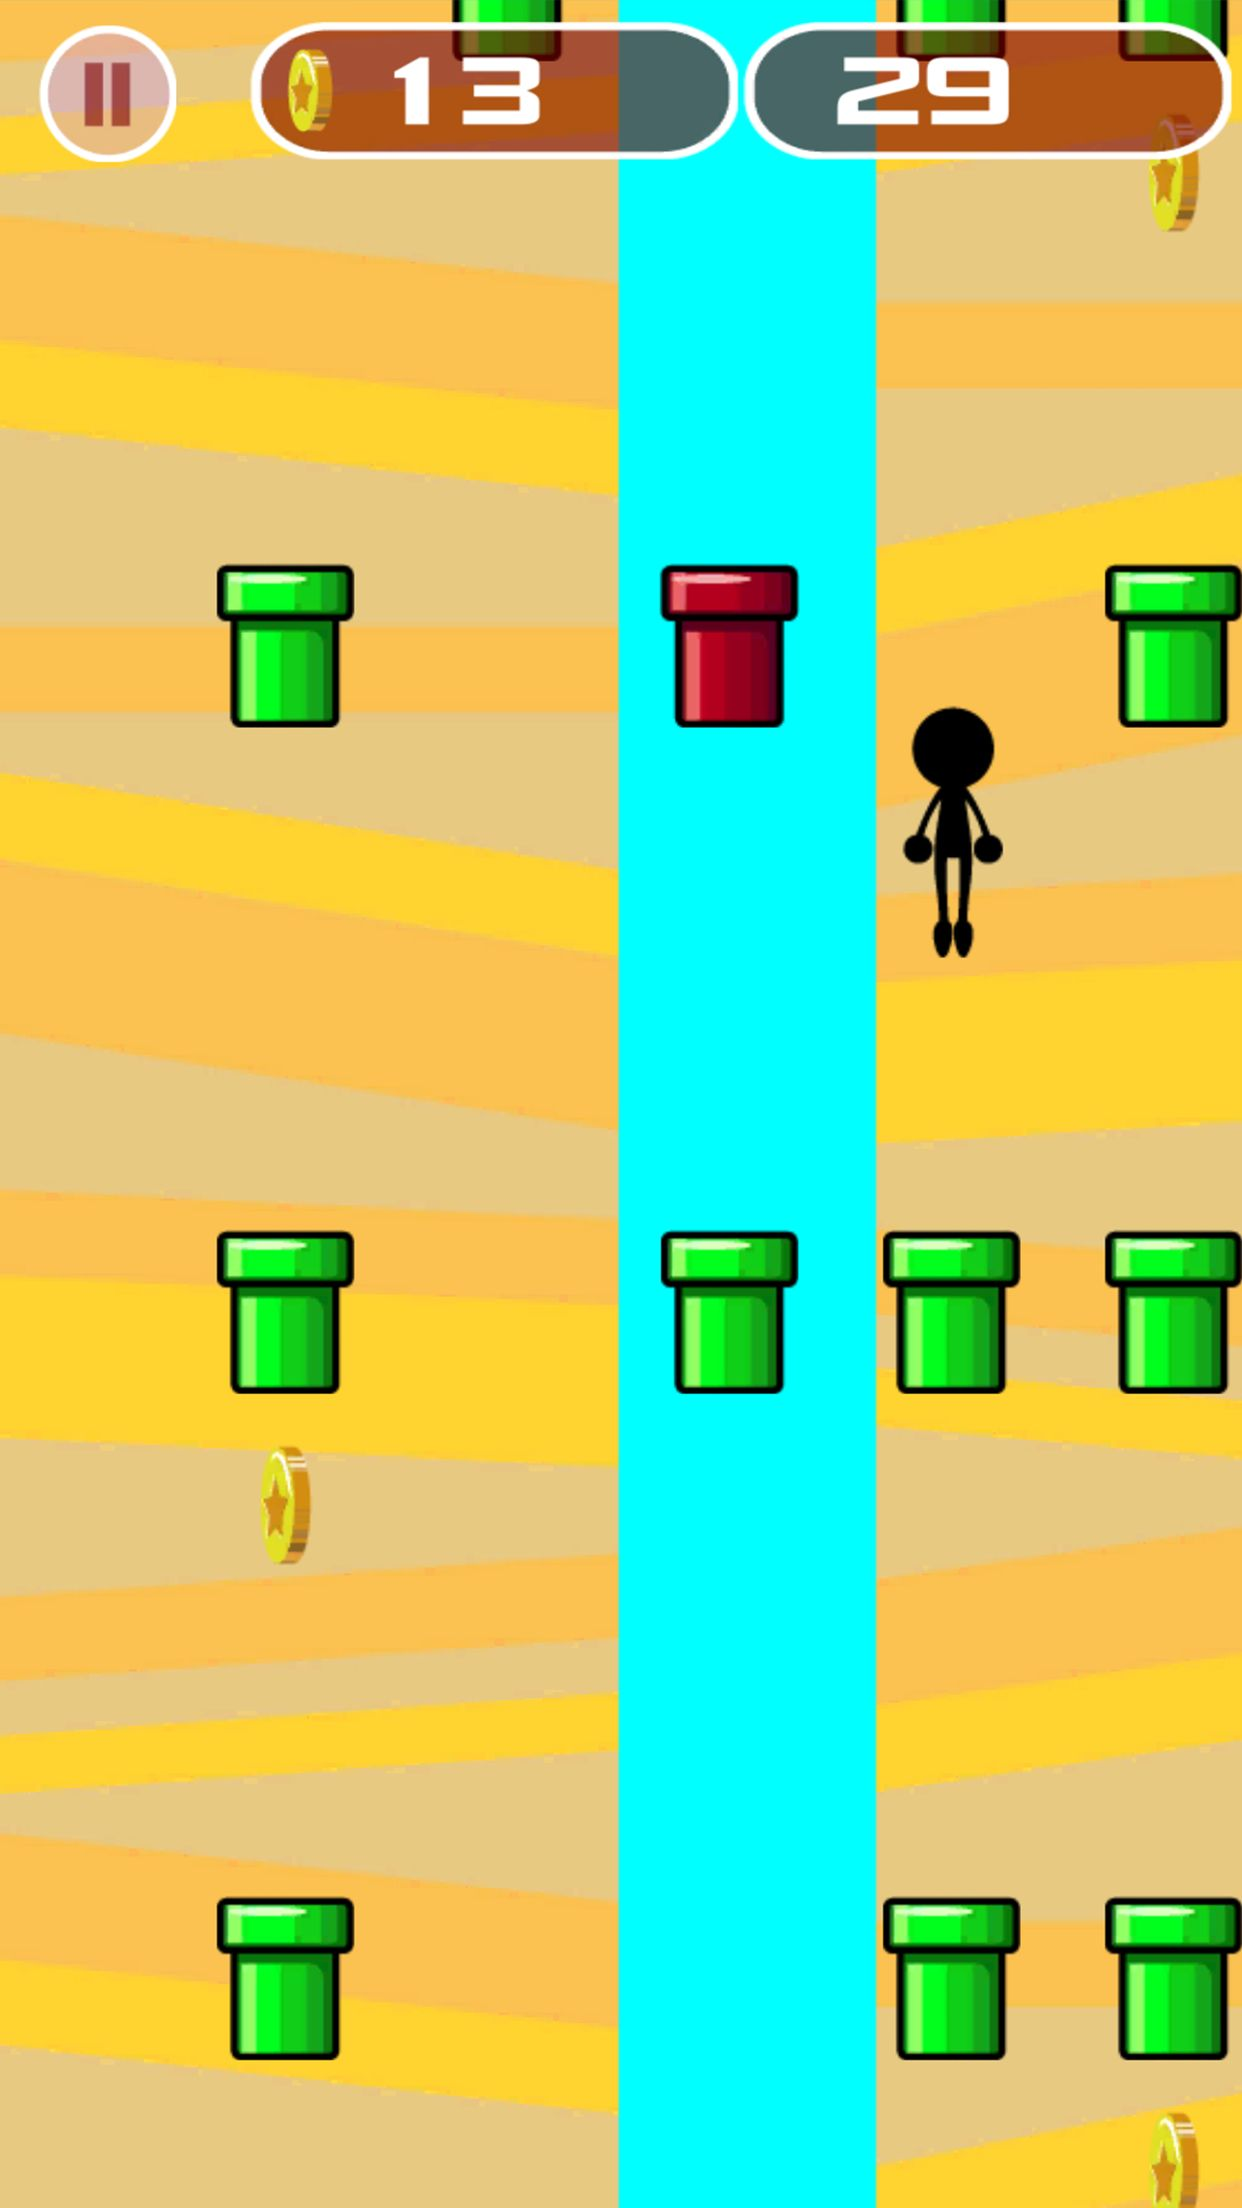 Stickman Bouncing - Complete Unity Project Screenshot 3